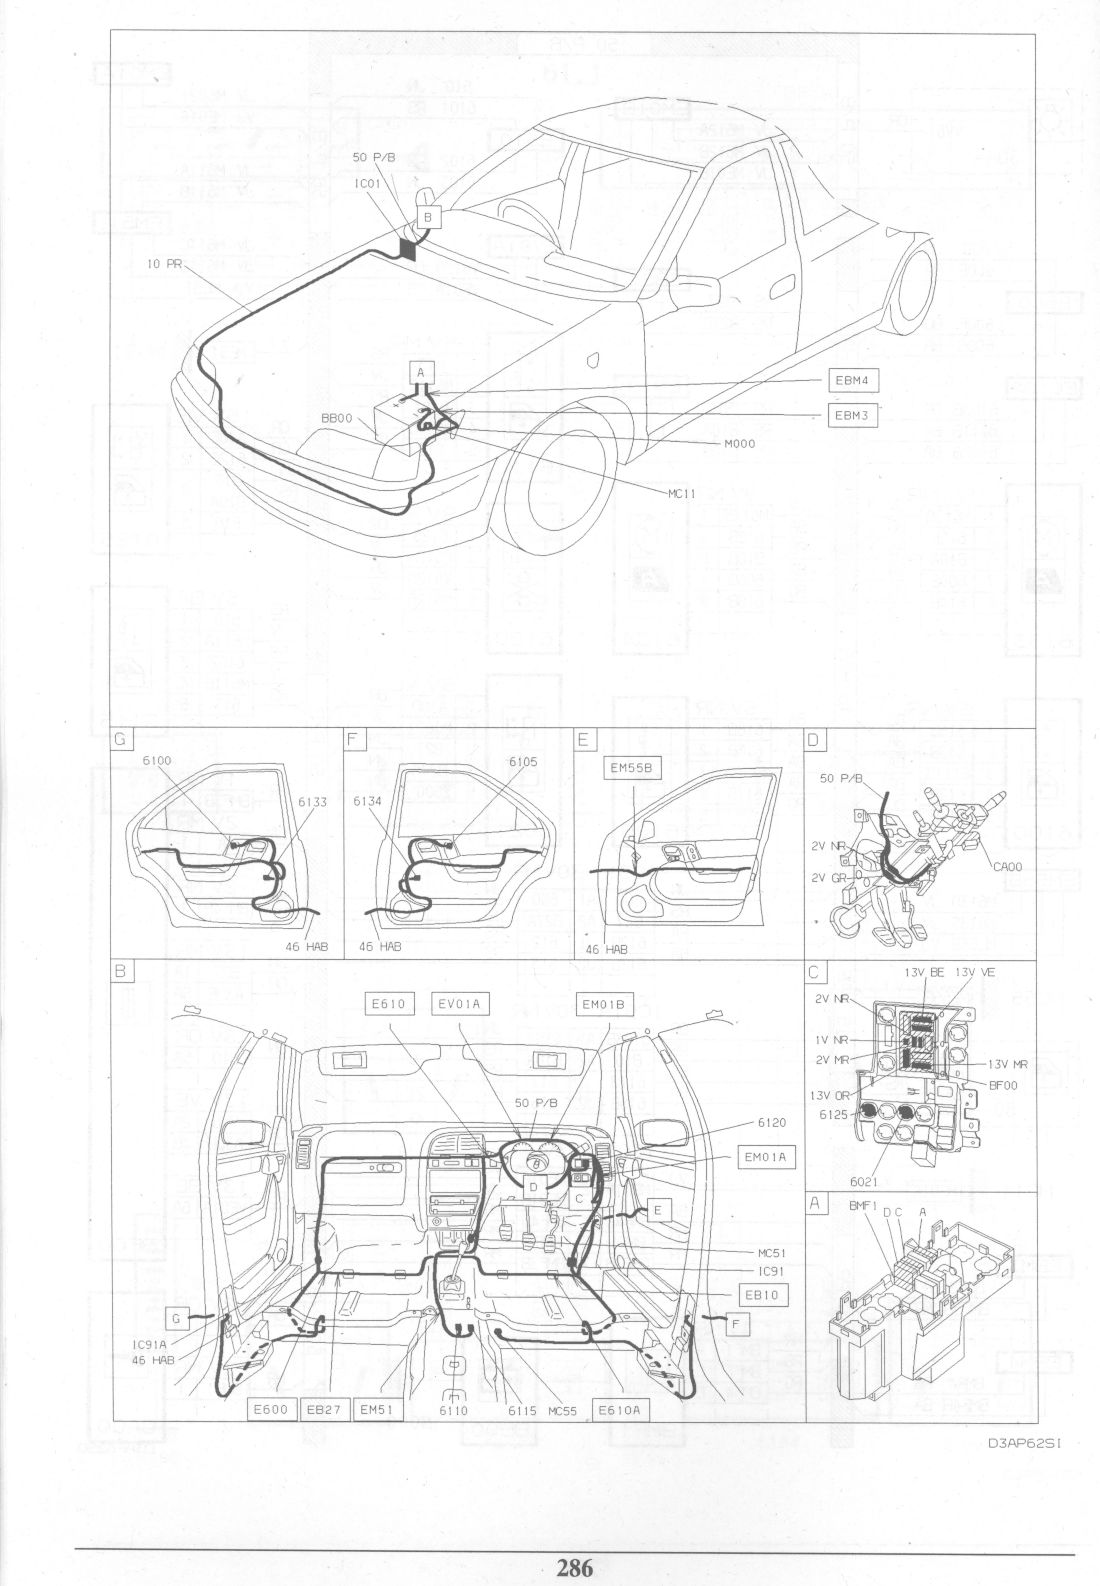 Citroen C5 X7 Wiring Diagram Qubee Quilts Diagrams Somurich Com